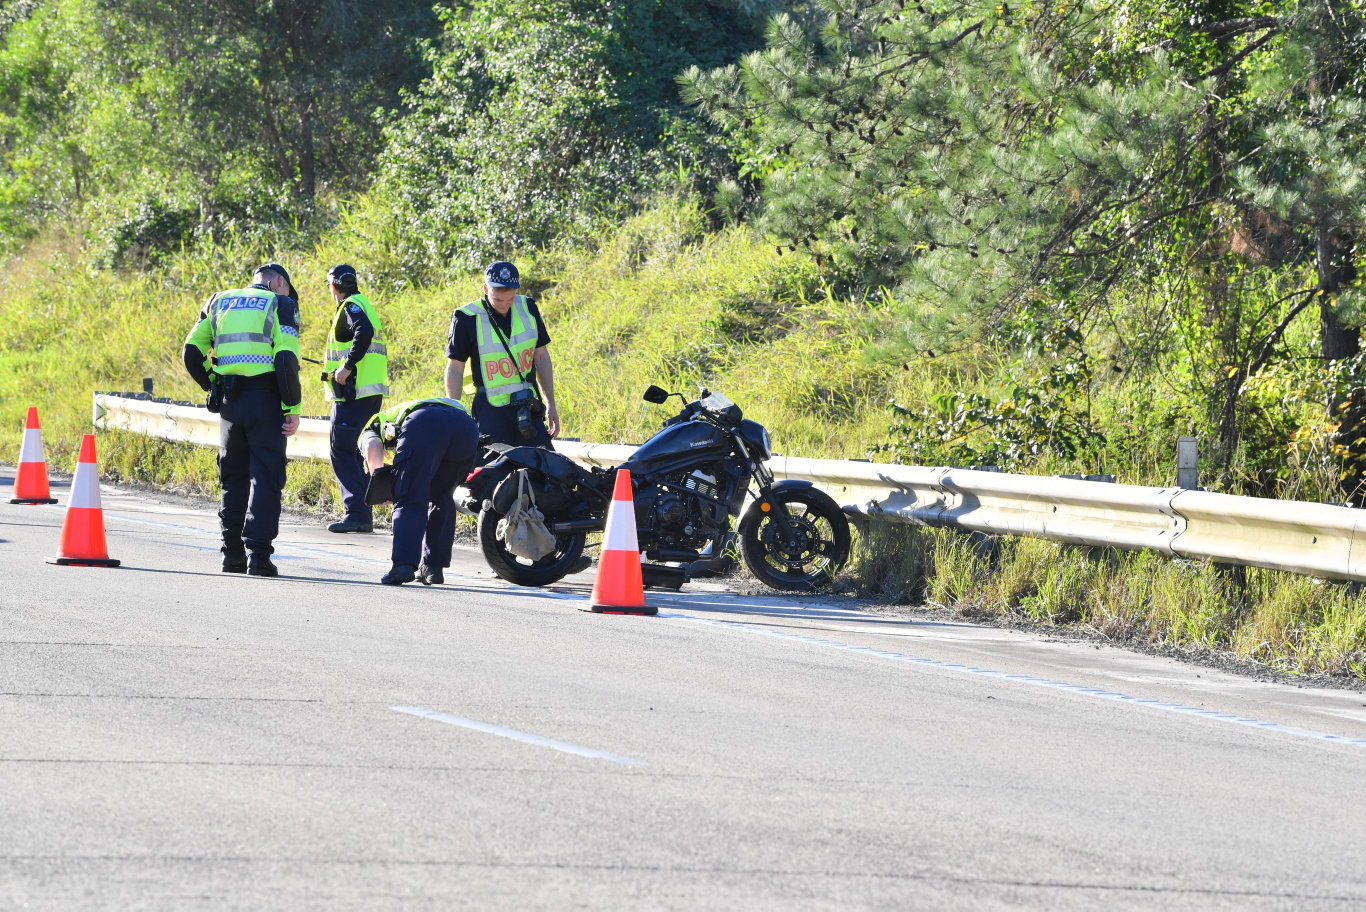 A man lost his life in a motorcycle accident on the Bruce Highway near Yandina.